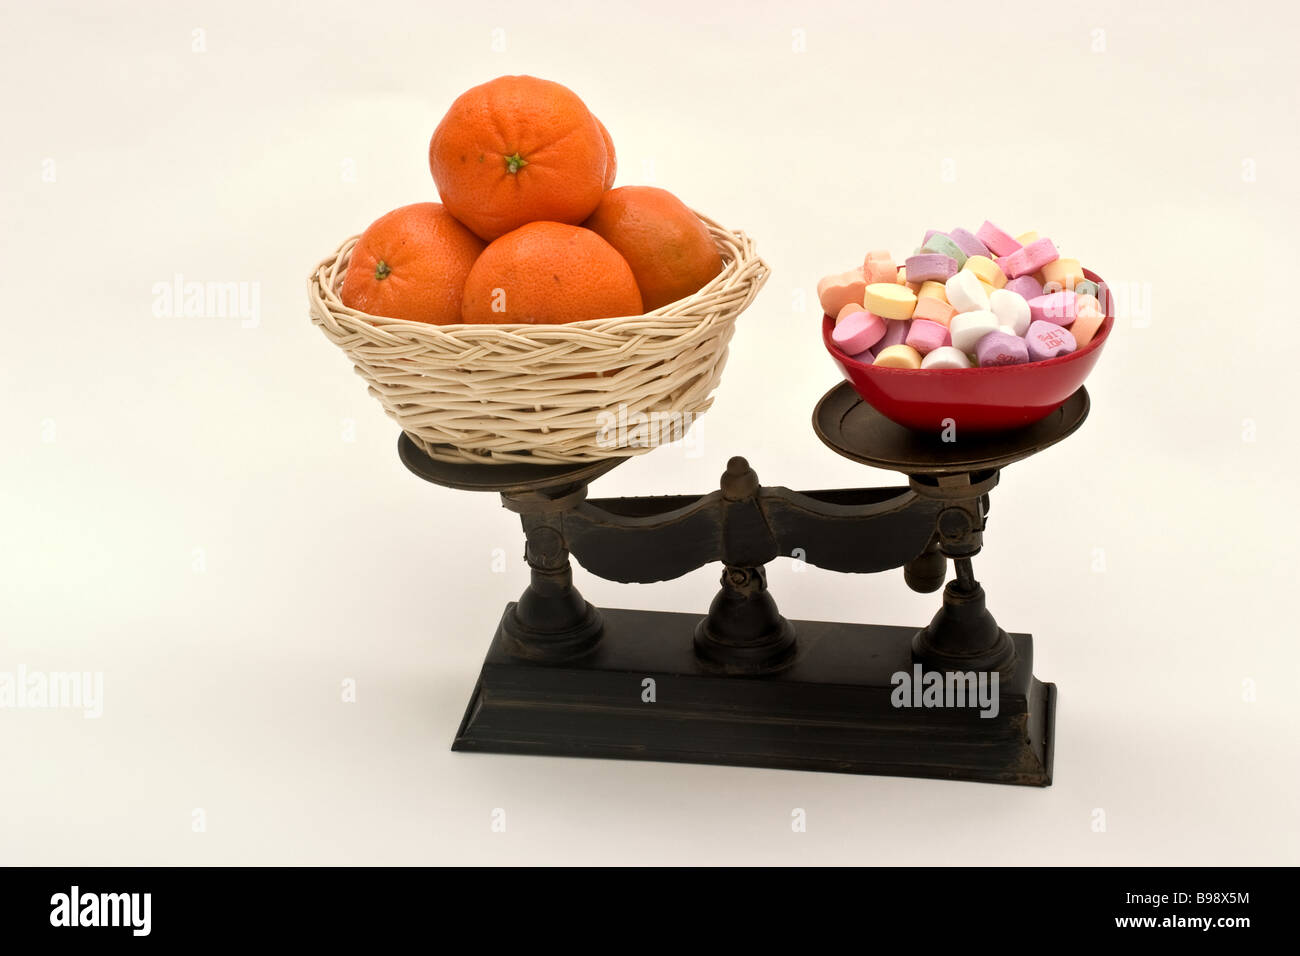 Balance scale with a basket of oranges on one side and a candy dish filled with candy on the other - Stock Image